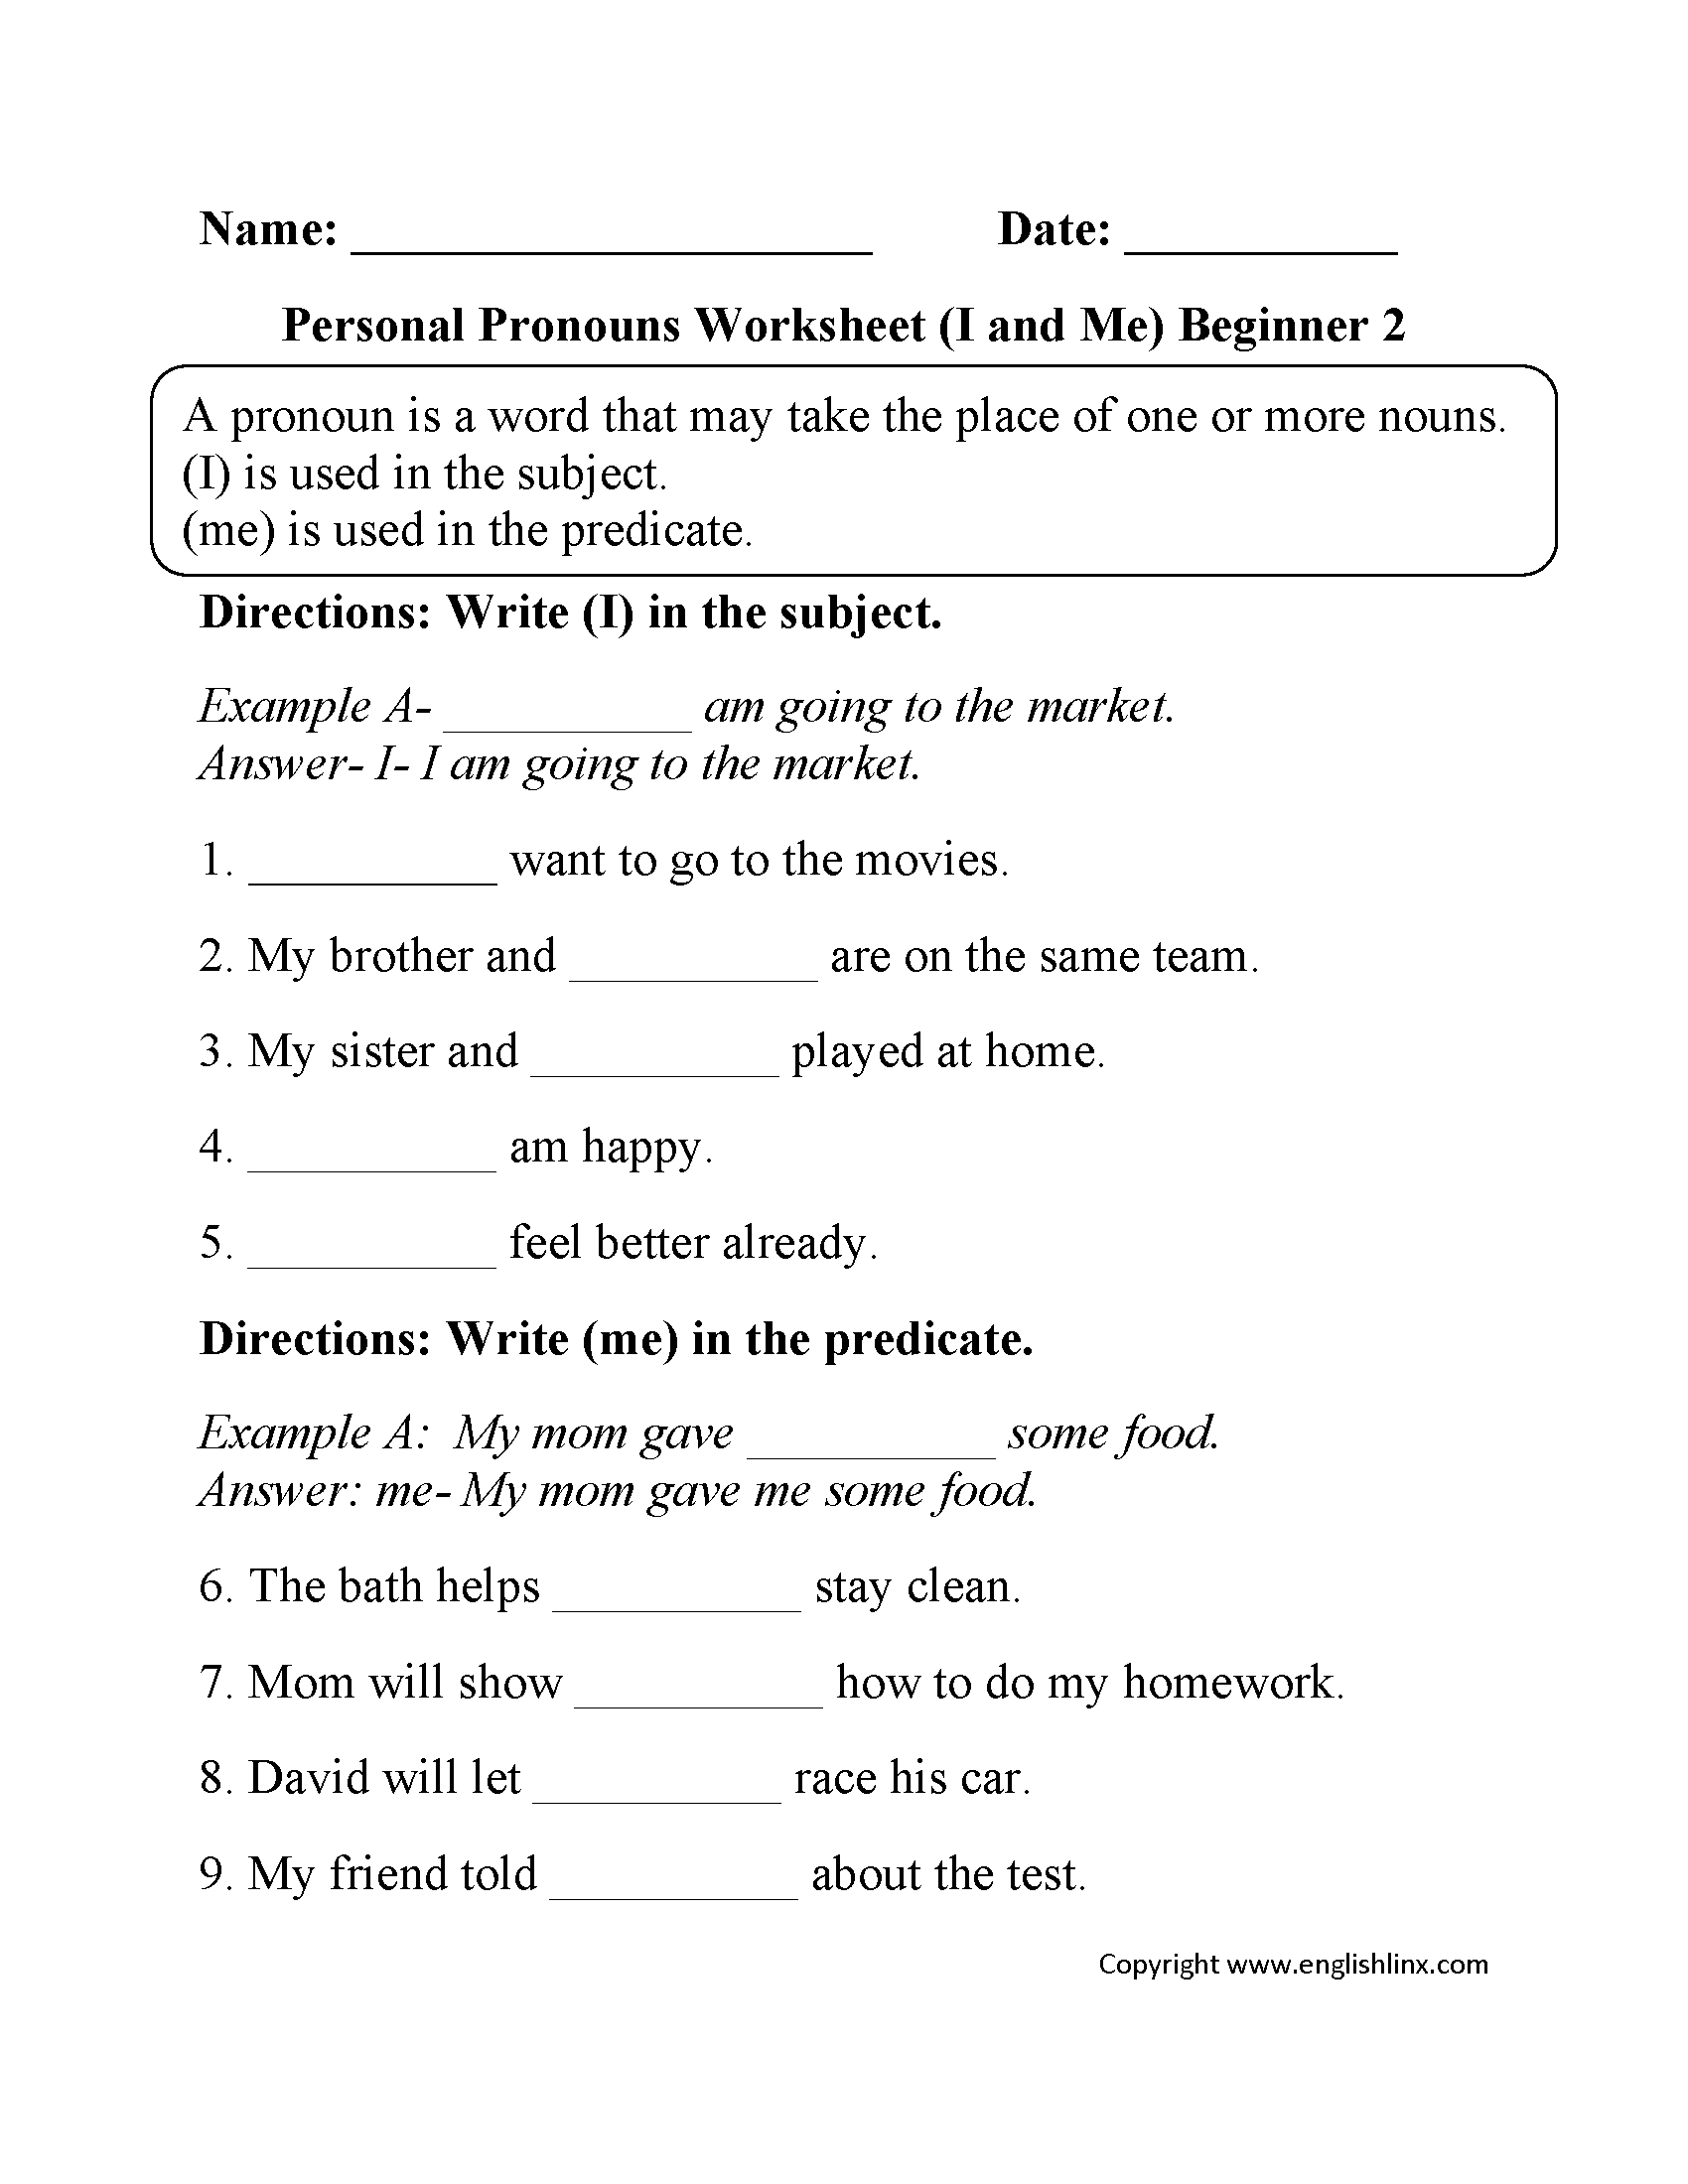 hight resolution of Pronouns Worksheets   Personal pronouns worksheets